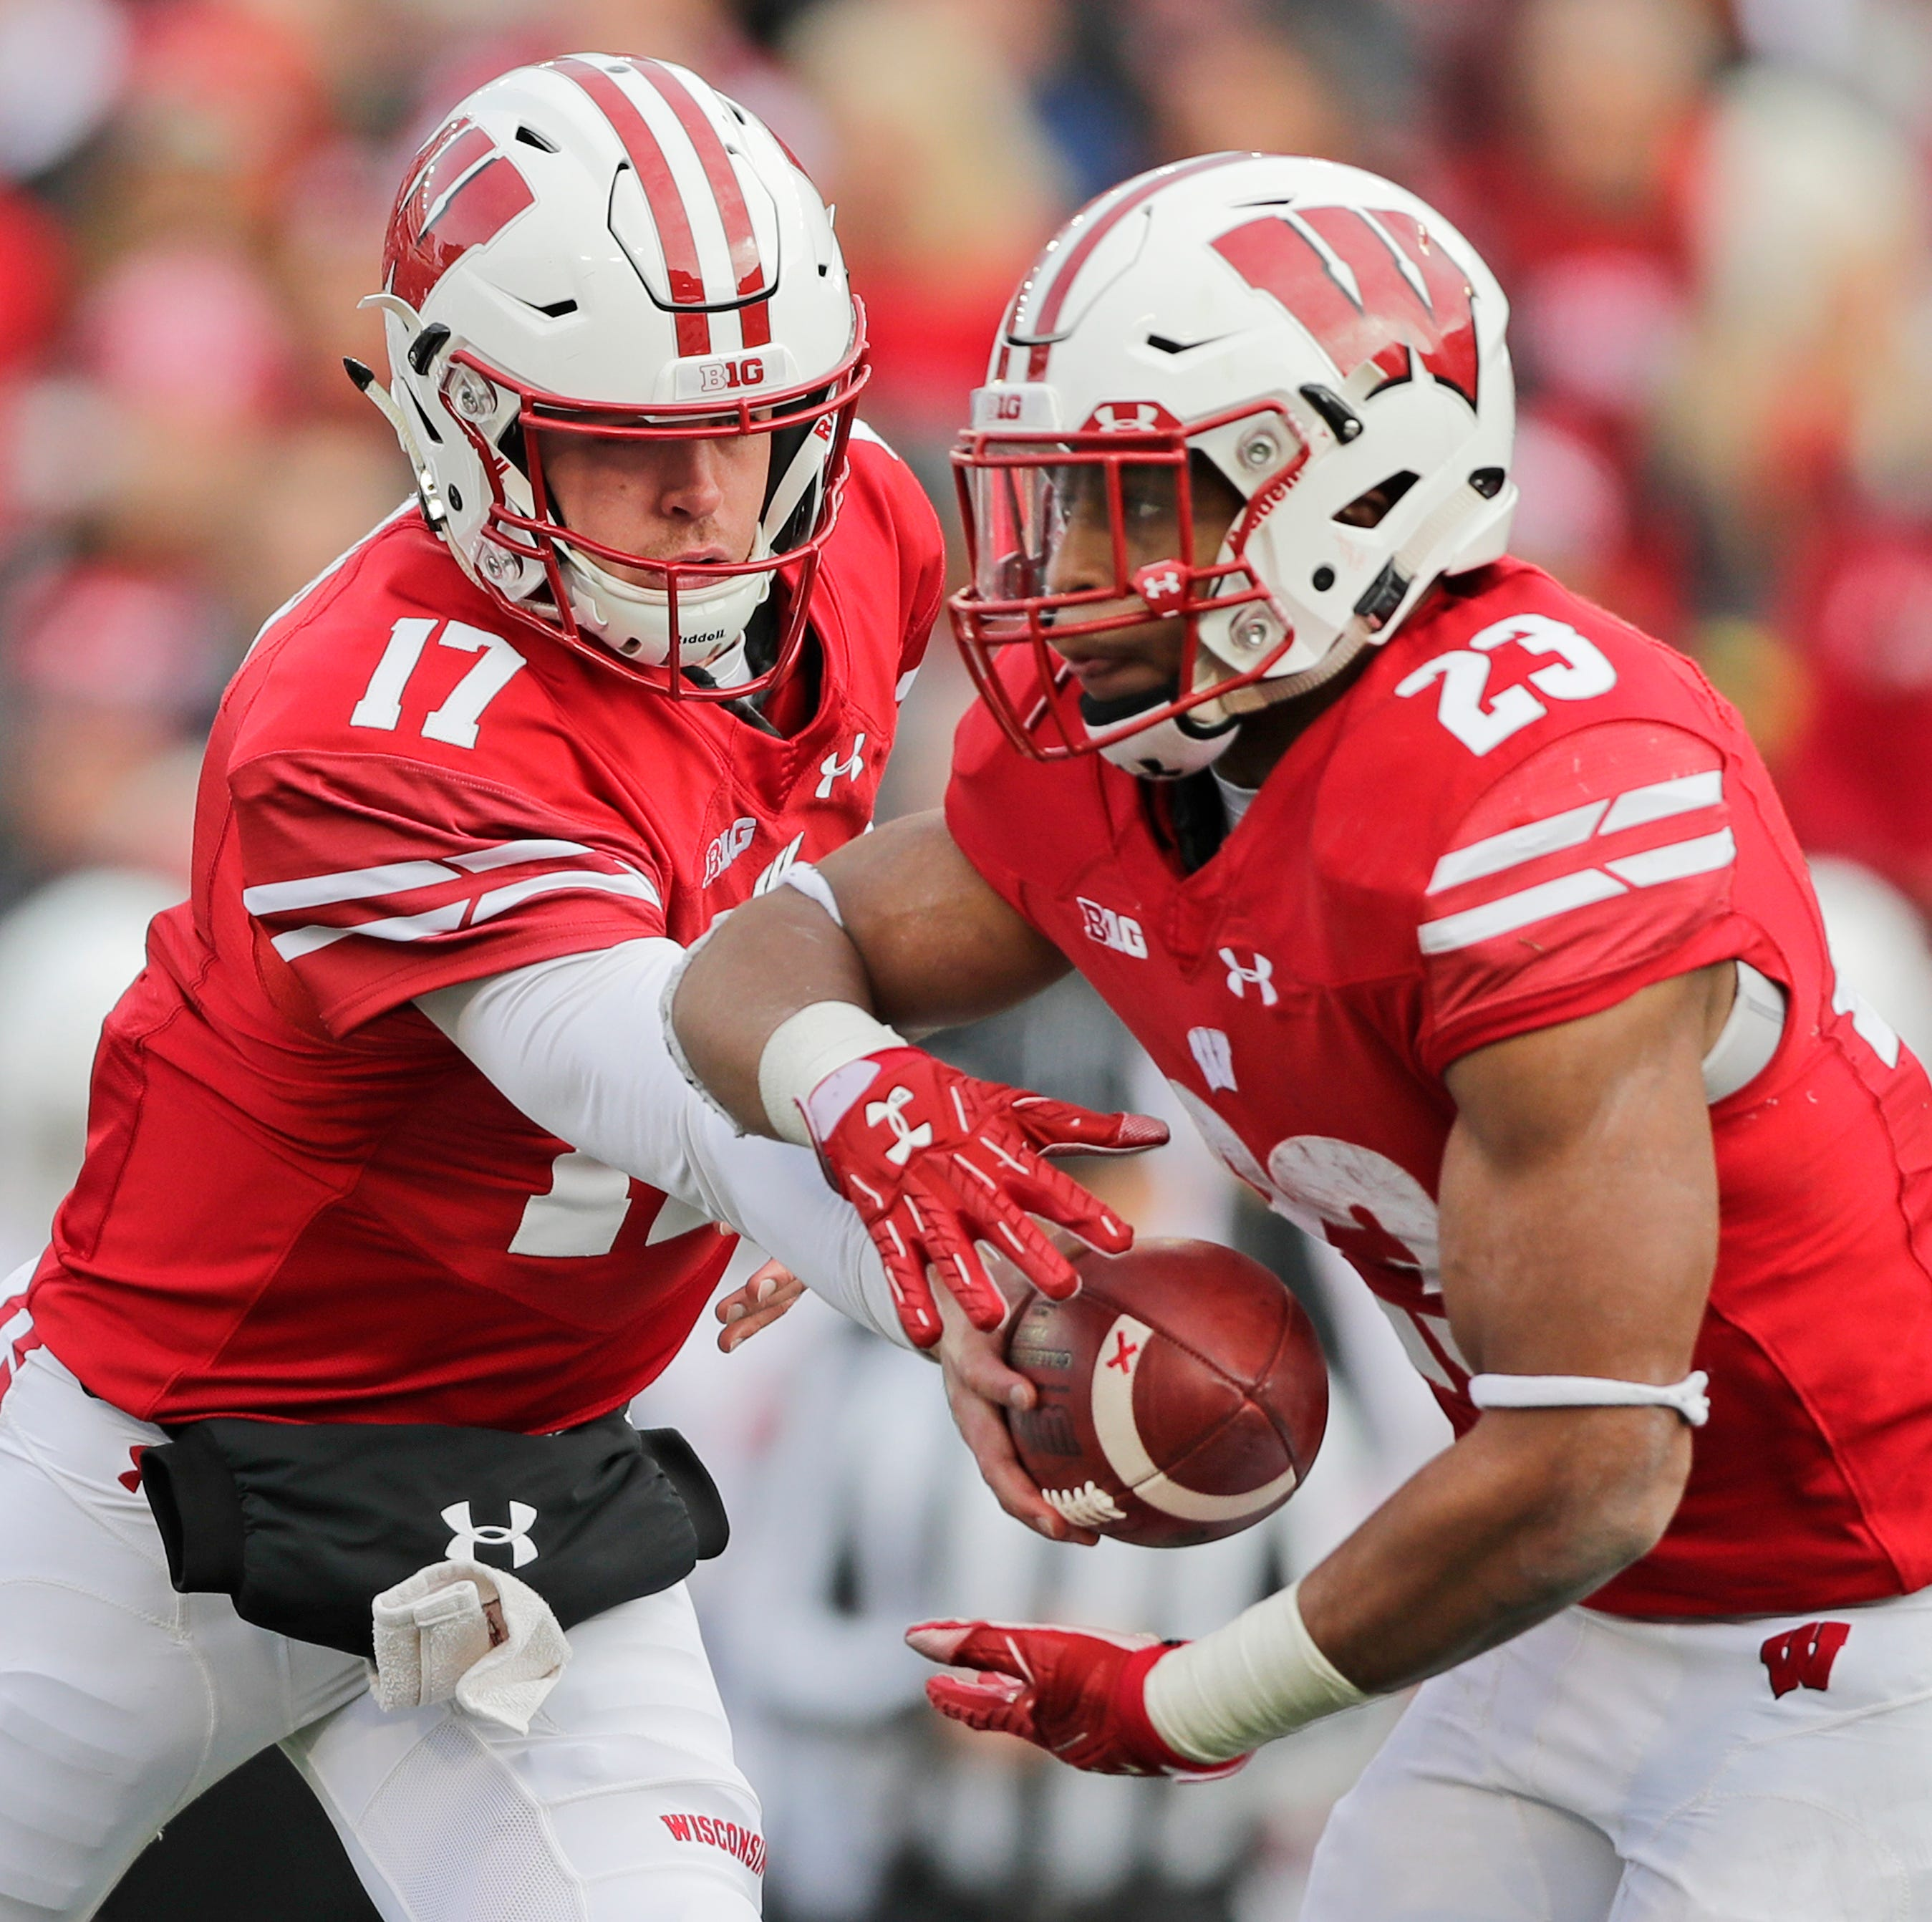 Wisconsin at Purdue: Game preview, prediction